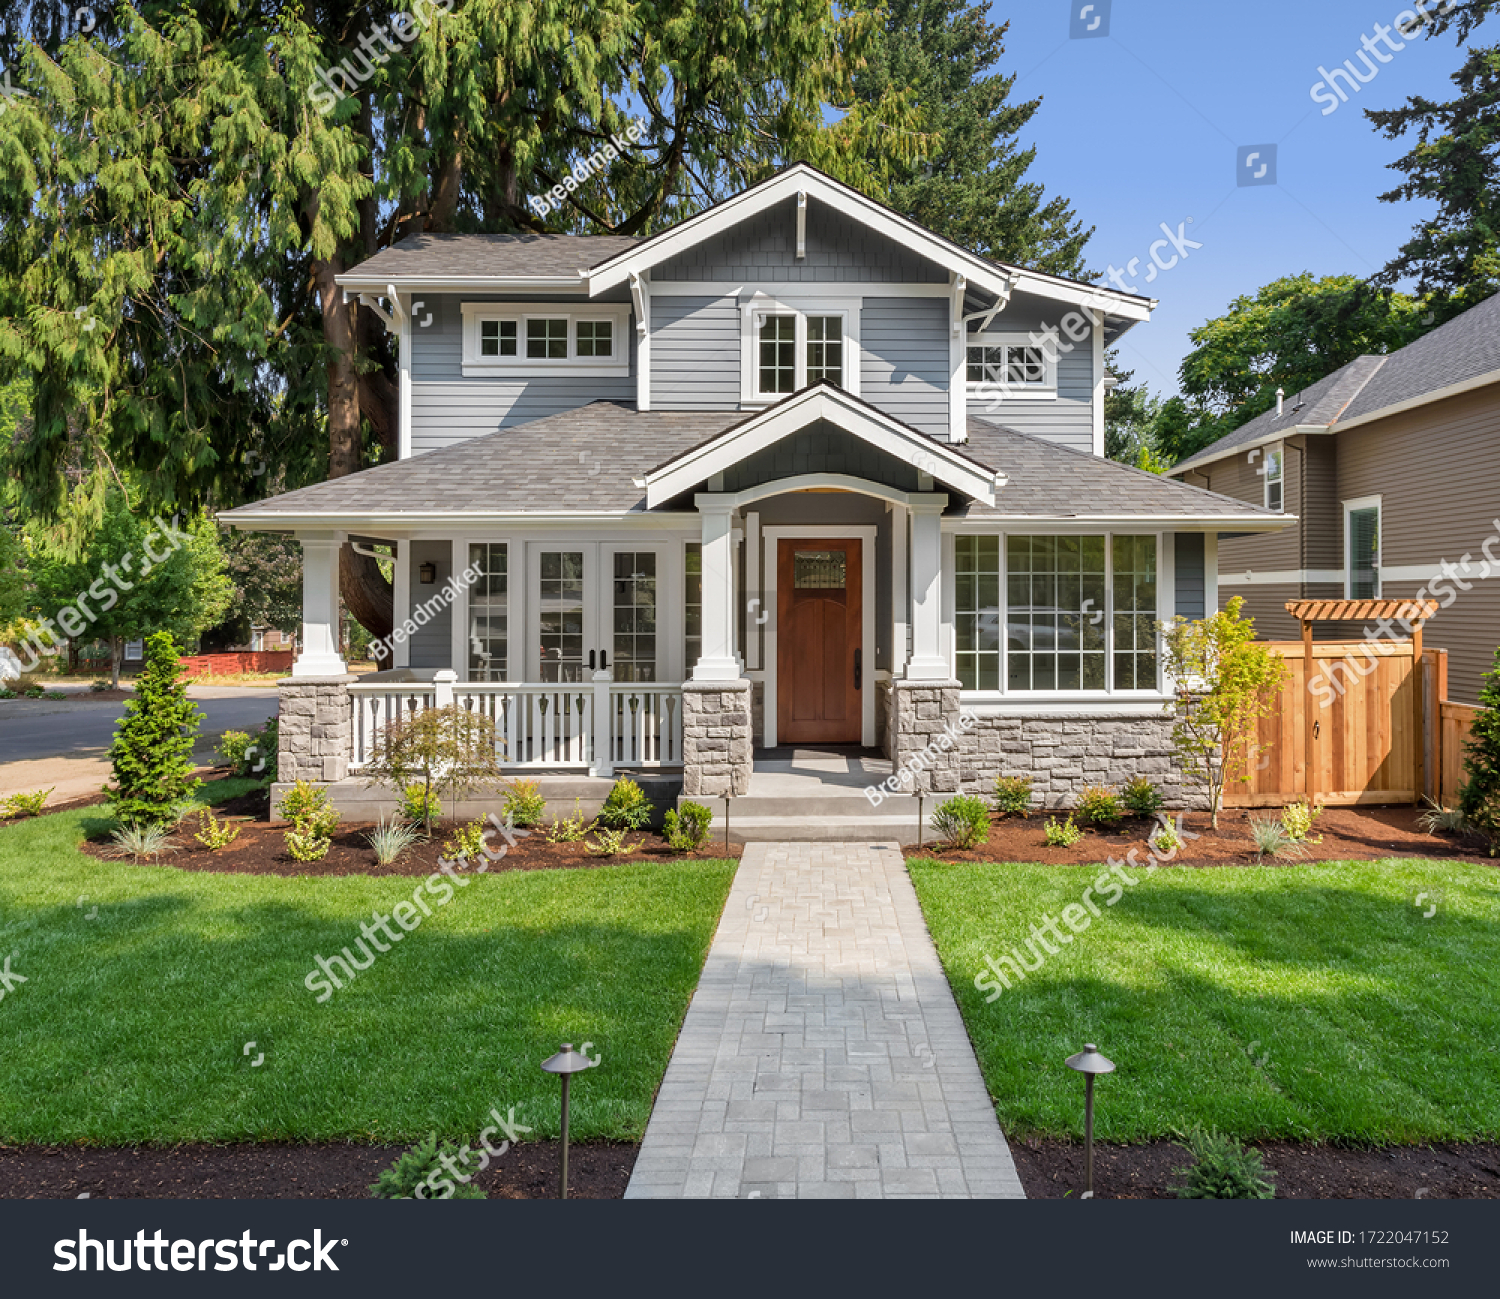 Beautiful new home exterior with covered porch and green grass on bright sunny day with blue sky #1722047152